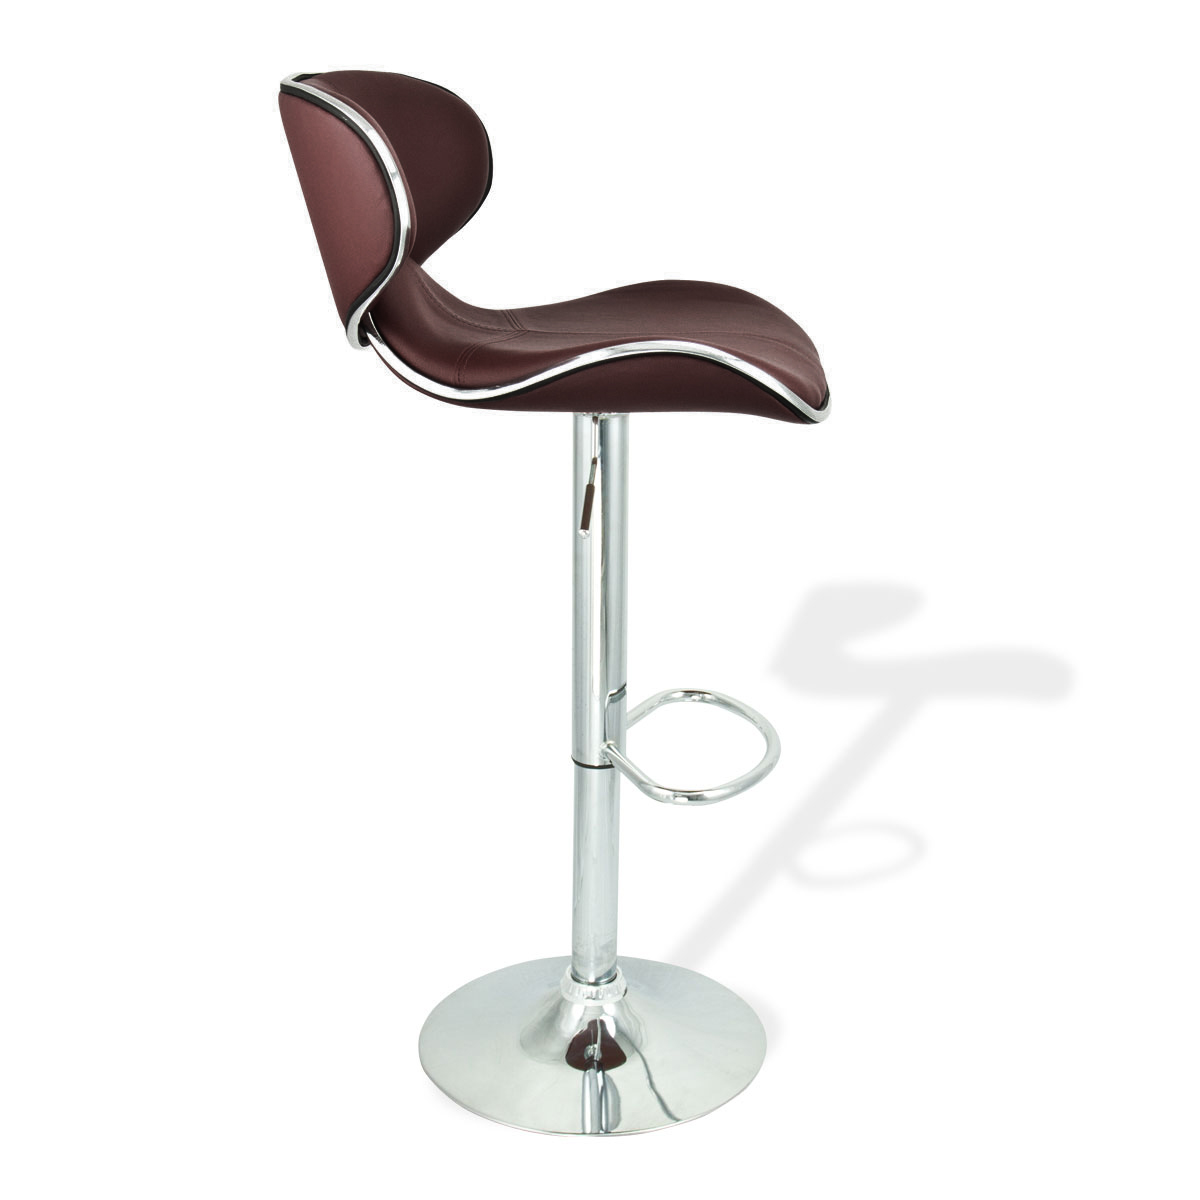 2 Brown Modern Adjustable Barstool Swivel Elegant Pu